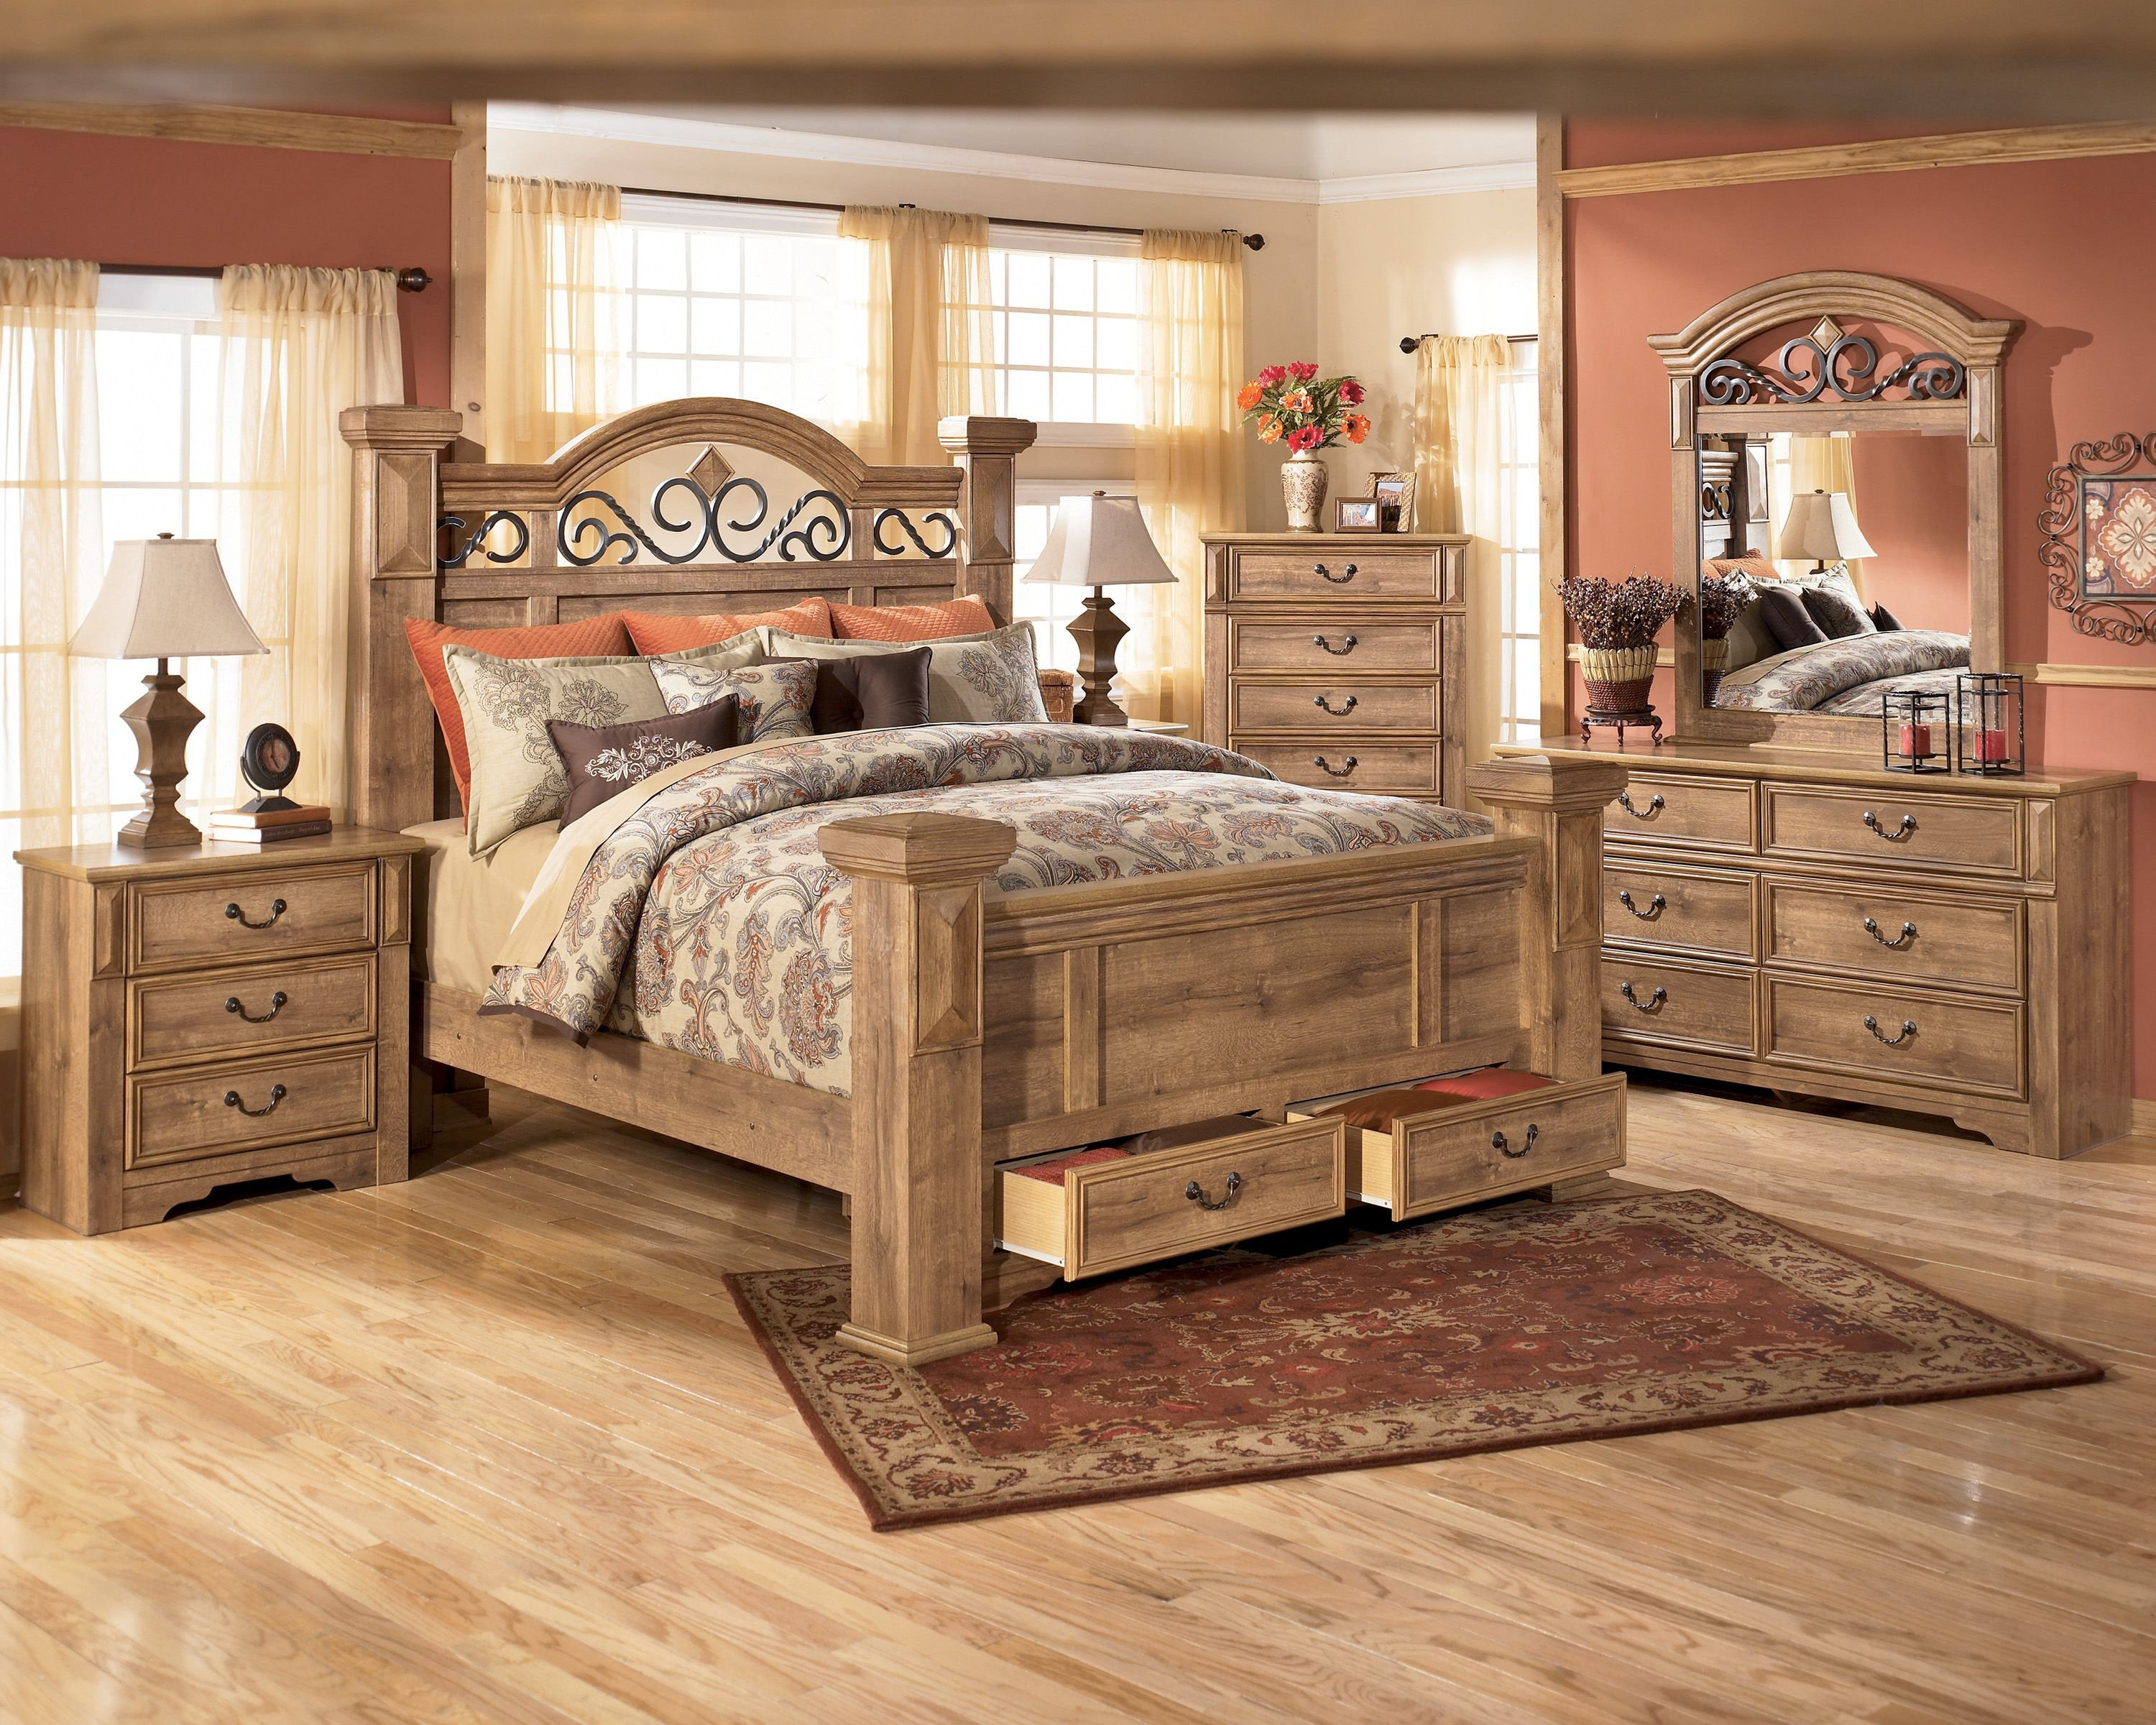 King Size Bedroom Set for Sale Lovely Awesome Awesome Full Size Bed Set 89 Home Decorating